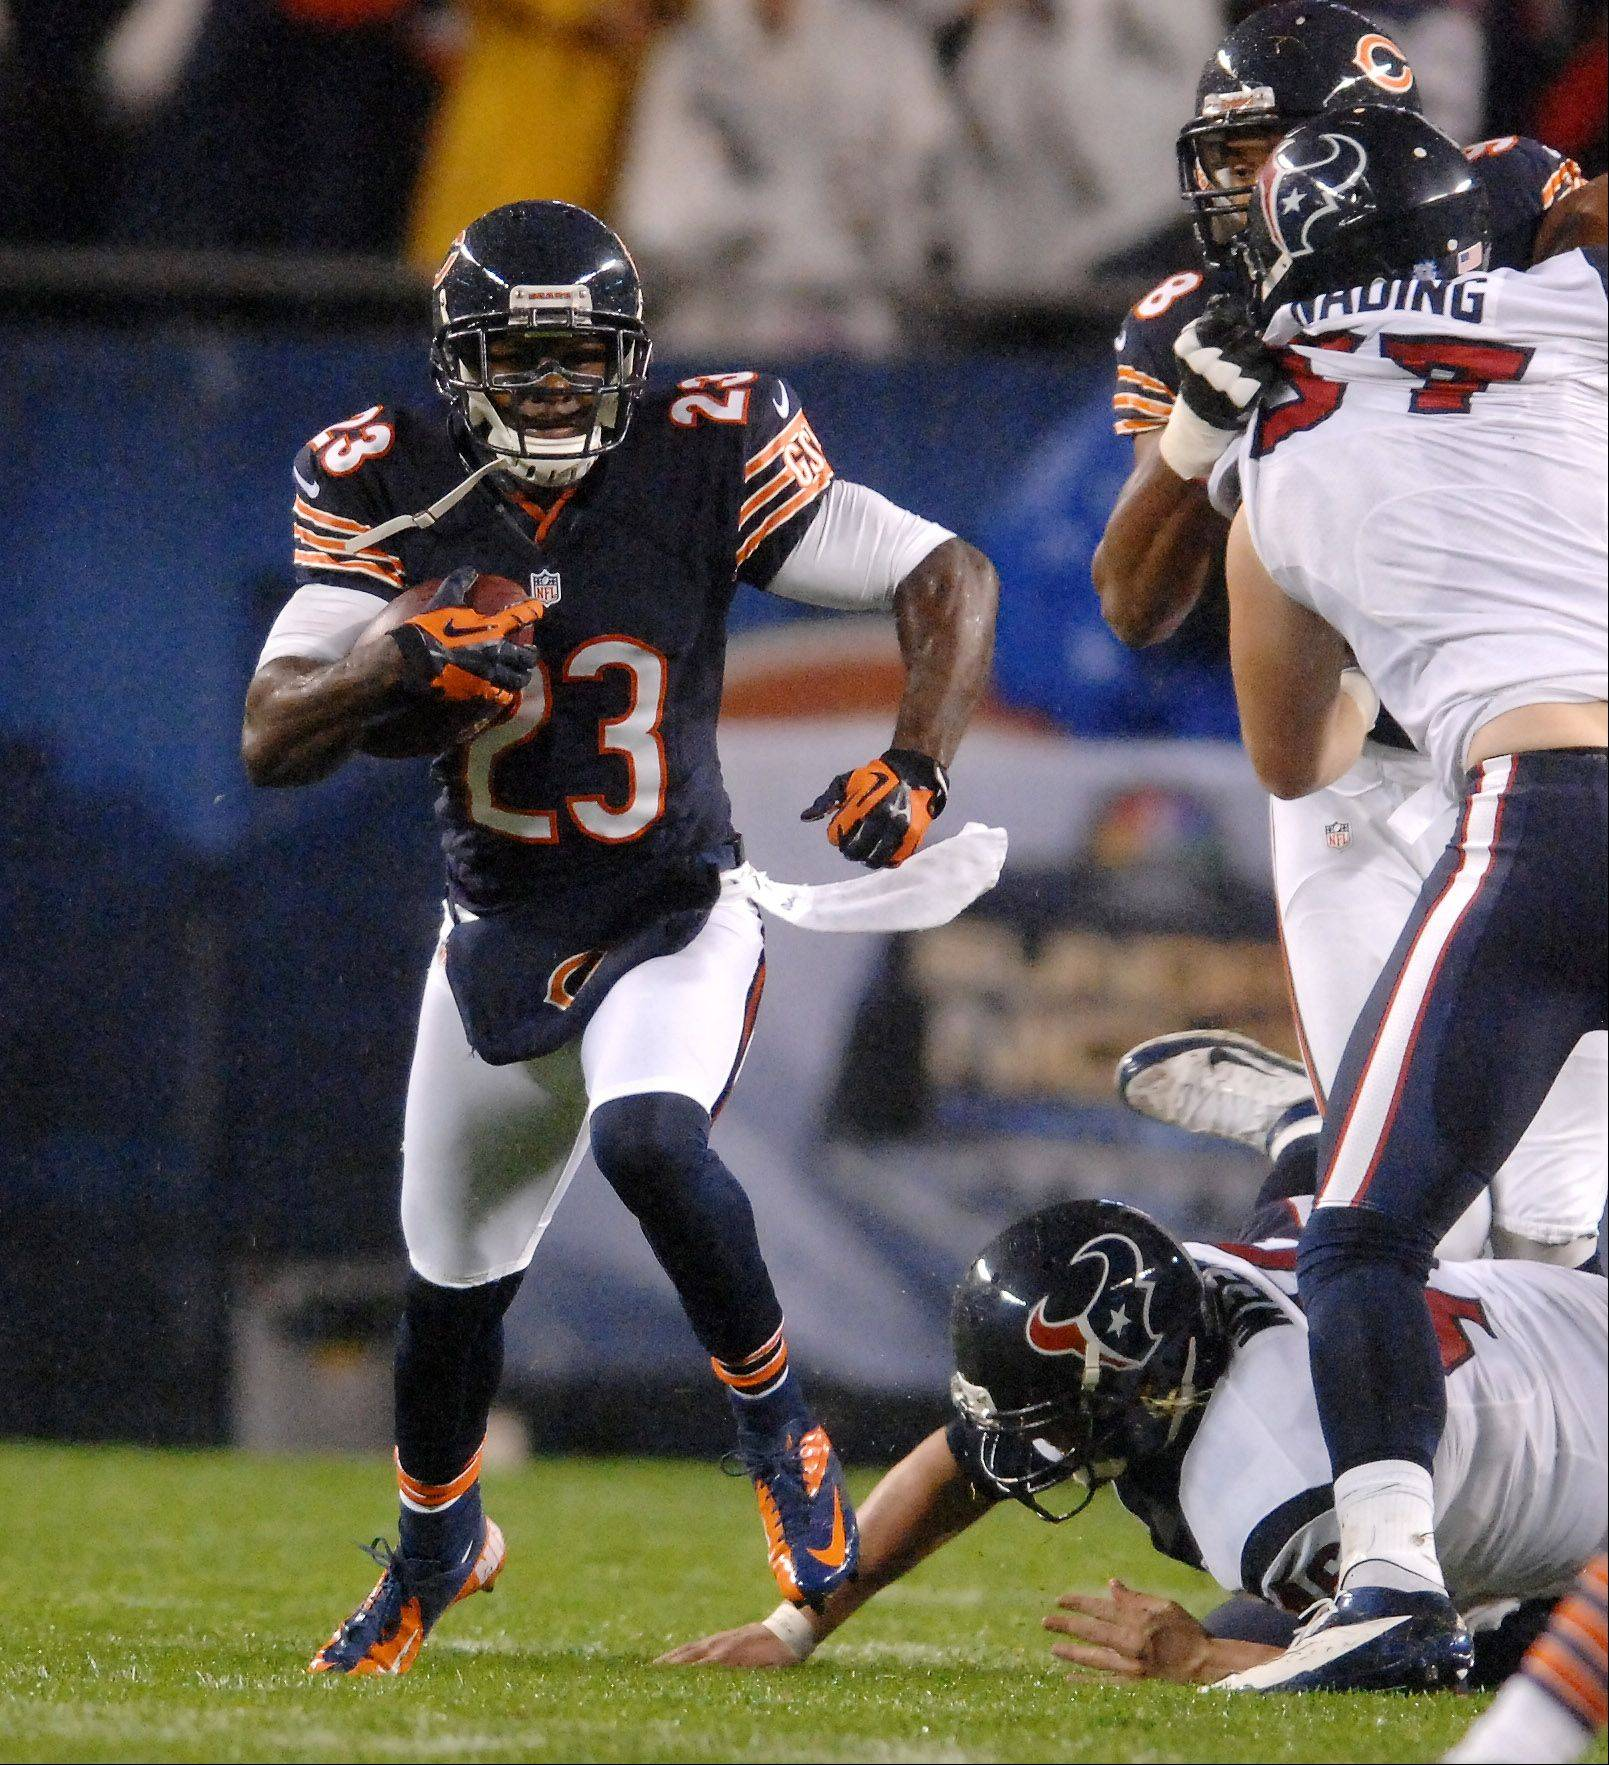 Chicago Bears wide receiver Devin Hester (23) breaks a tackle on a punt return during Sunday's game at Soldier Field in Chicago.